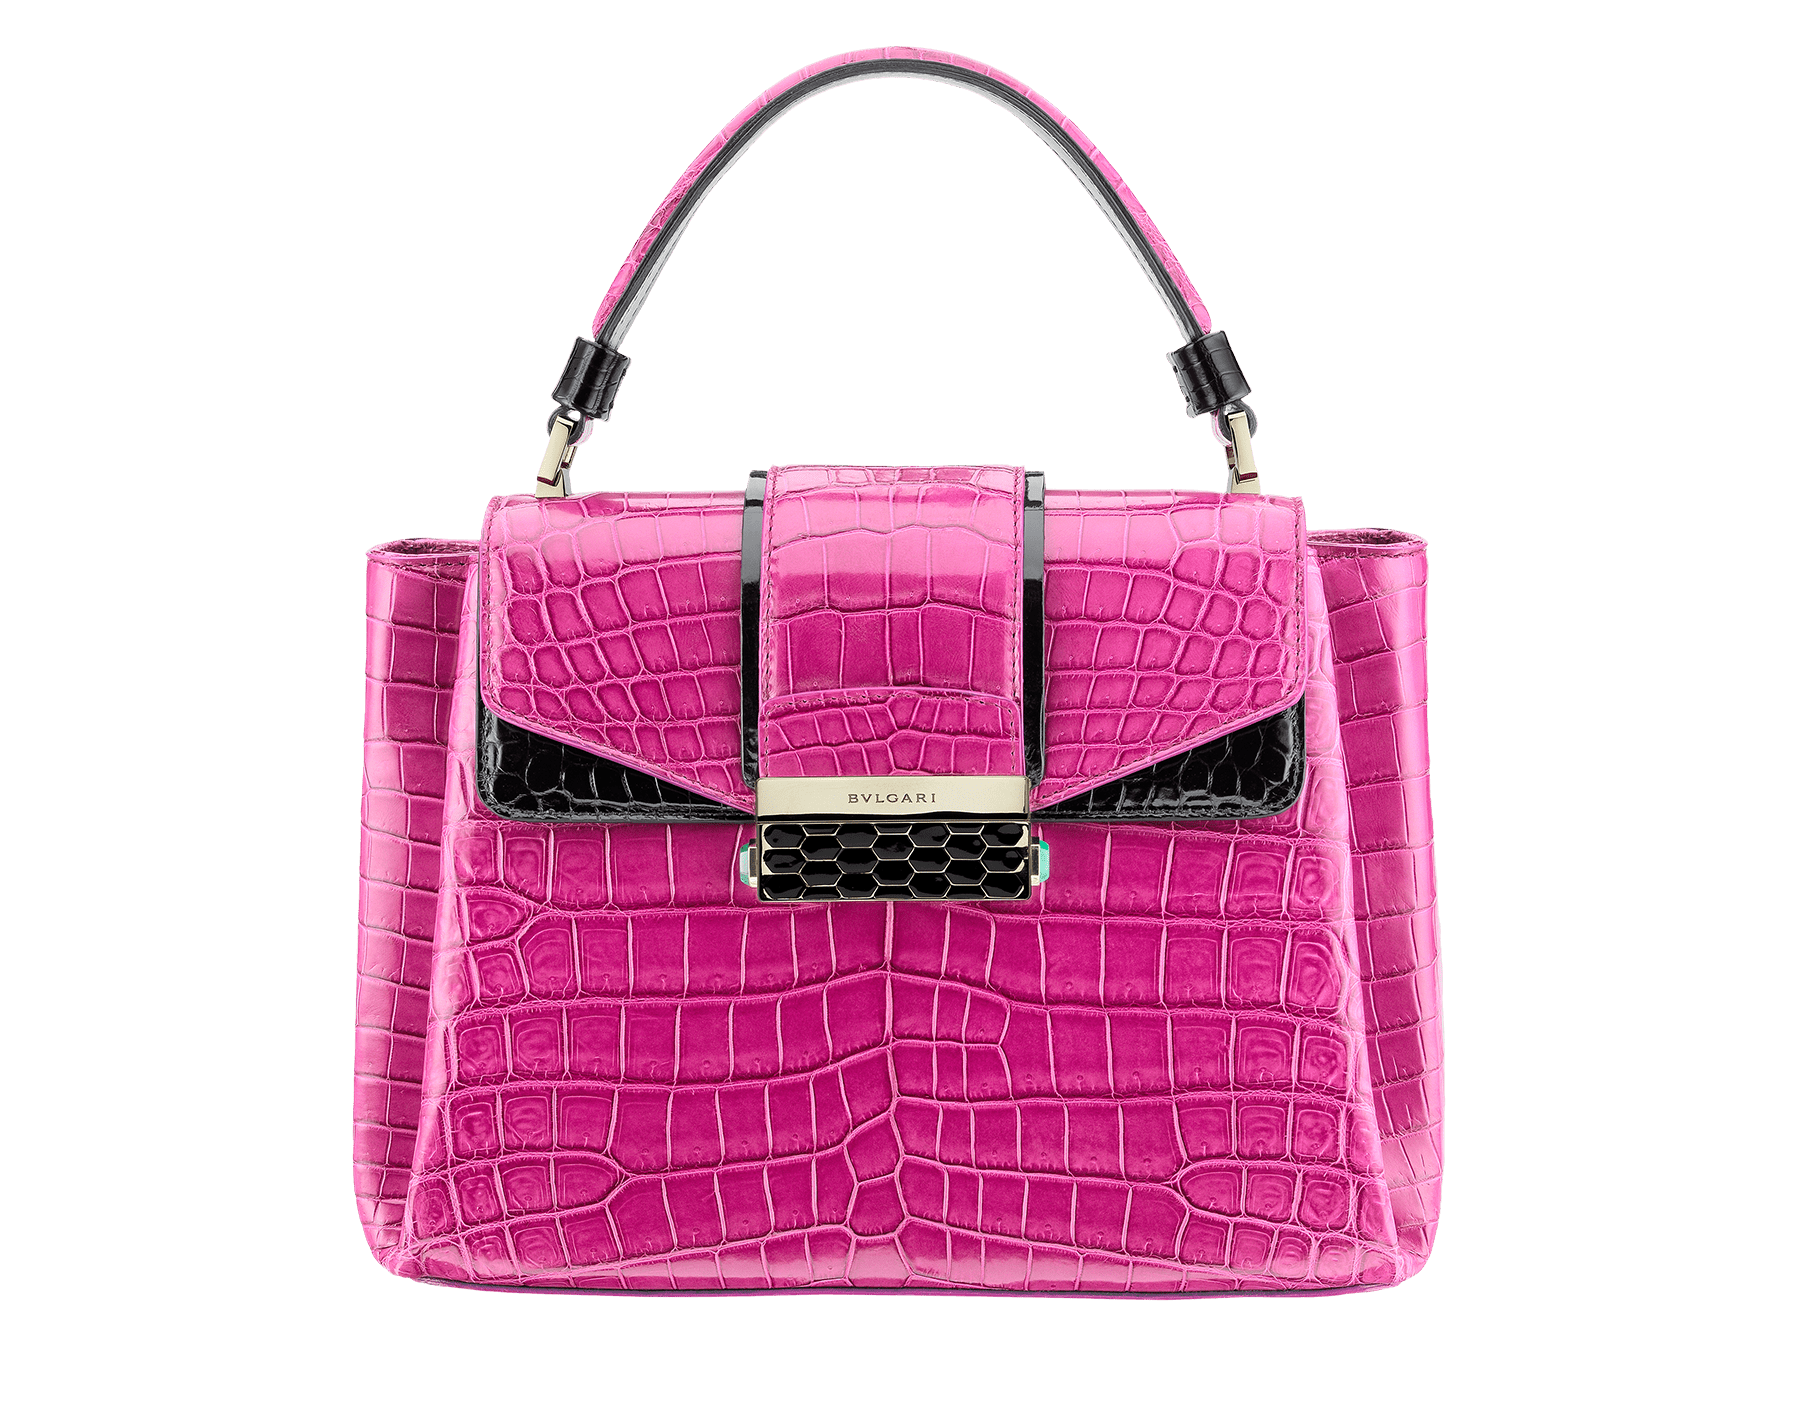 Top handle bag Serpenti Viper in raspberry agate and black shiny crocodile skin. Brass light gold plated hardware and snap closure in black shiny enamel with iconic Scaglie design and lateral push buttons in green malachite stones. One front compartment with internal flap cover, one zipped pocket and one open pocket in the central compartment, one back open compartment. Internal metal tag featuring the Bulgari logo. Adjustable and removable shoulder strap Small size. 27 x 20 x 11 cm. - 10.6 x 7.8 x 4.3 281722 image 1